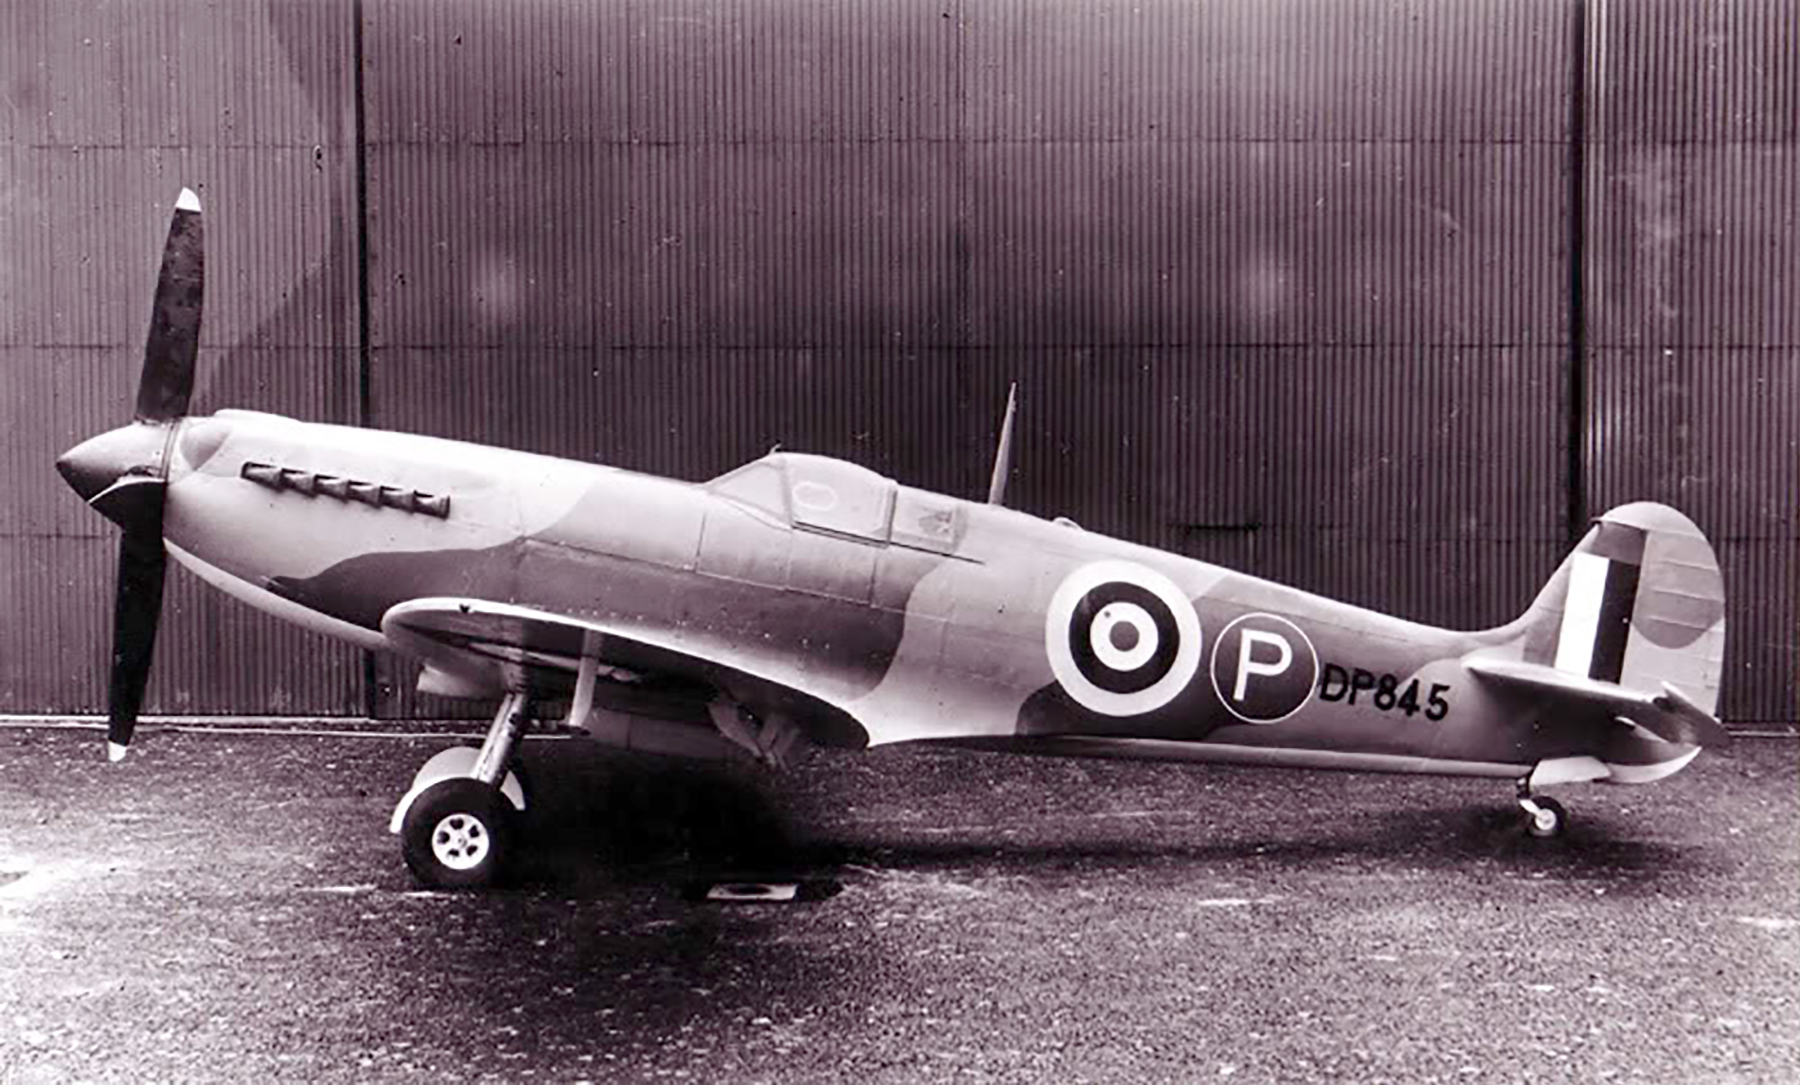 Spitfire 4 Prototype DP845 as the first Griffon Spitfire 01